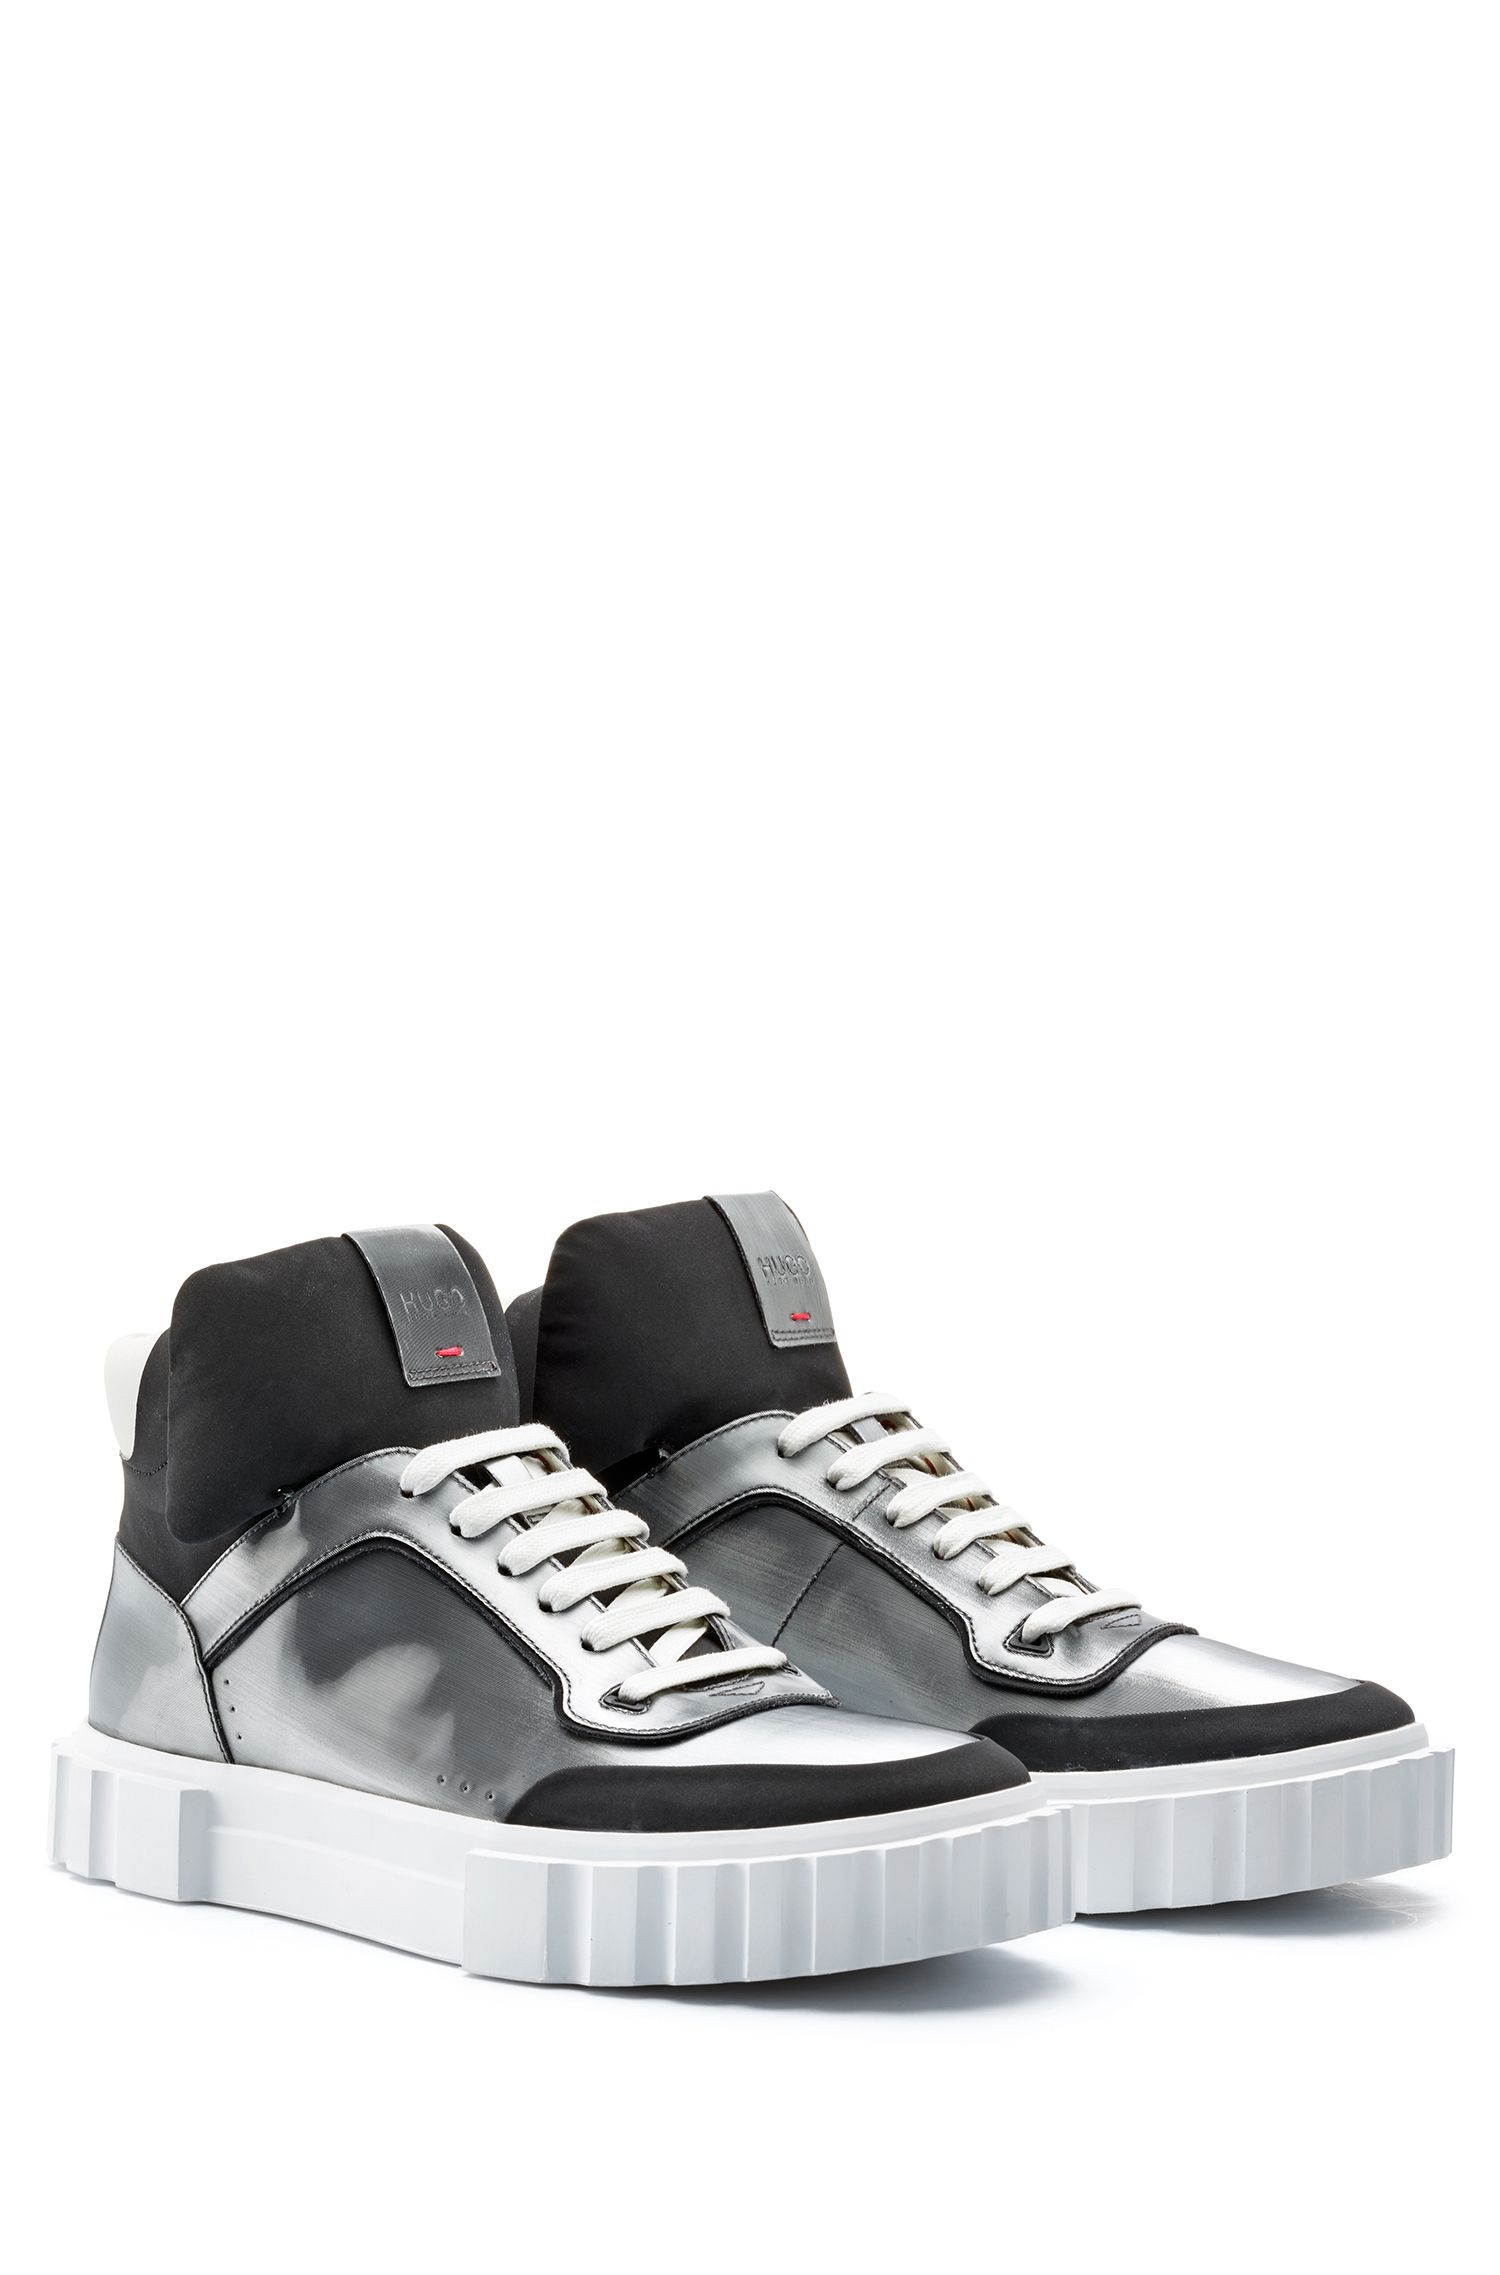 Sneakers high-top stringate con finitura metallizzata, Argento